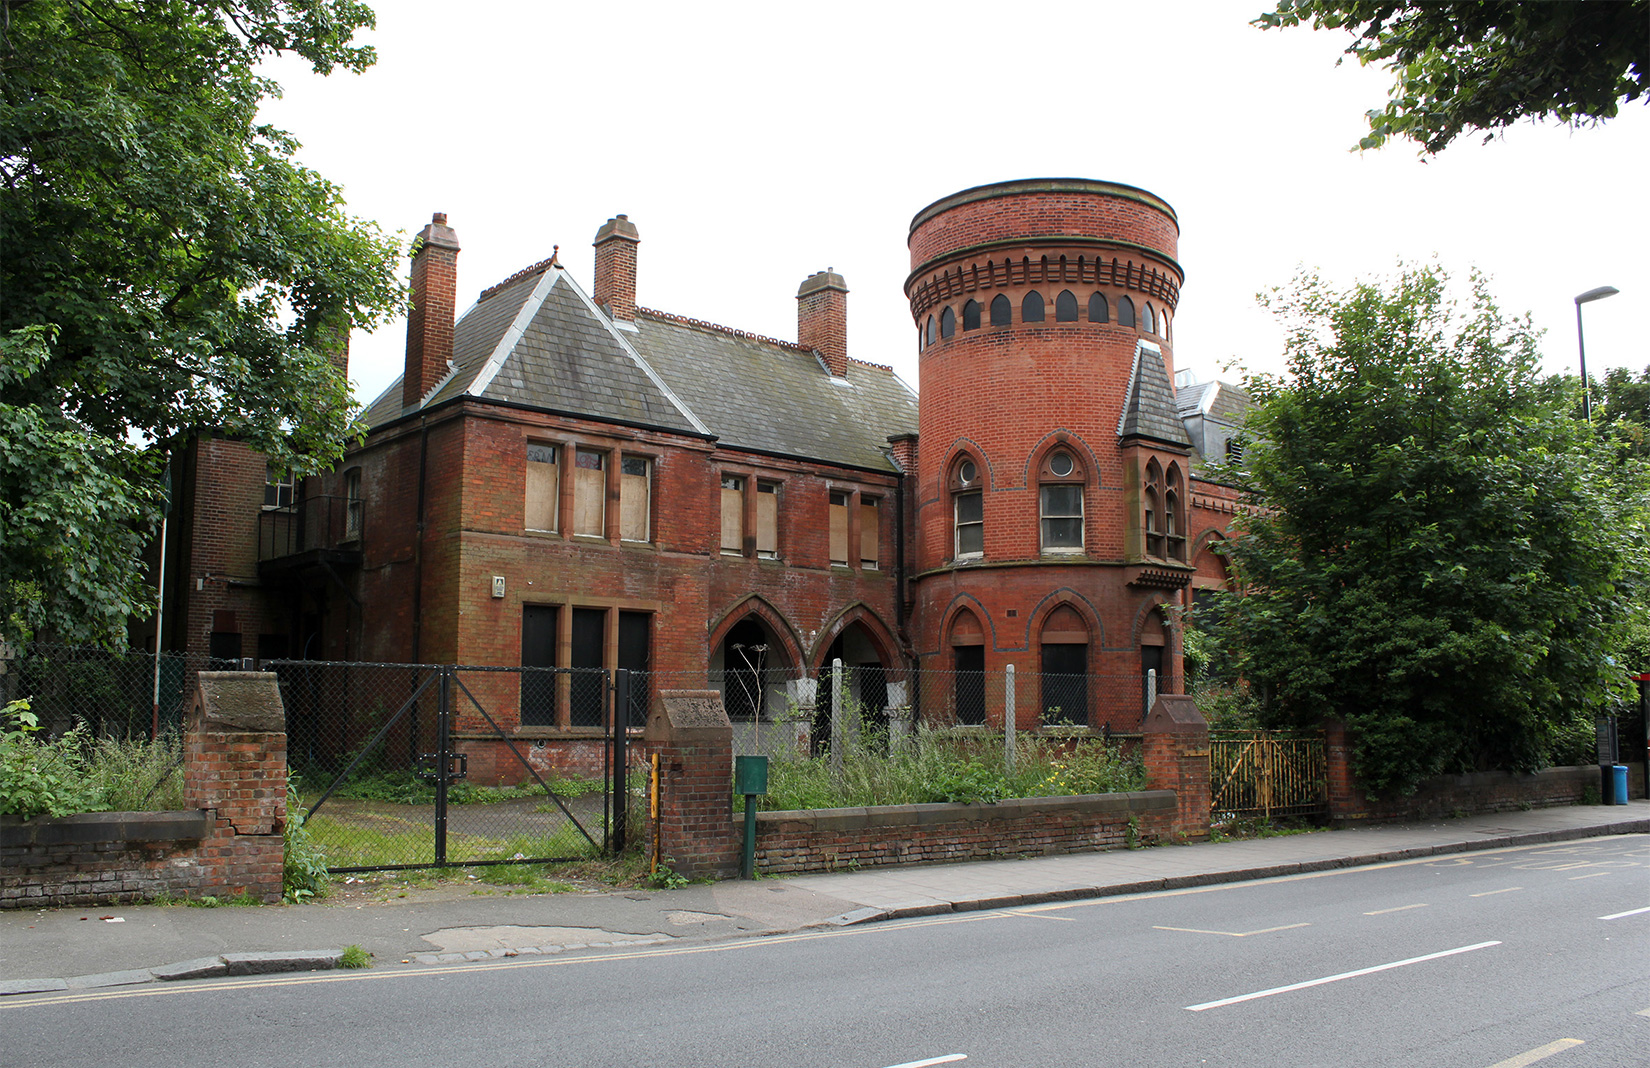 Ladywell Playtower